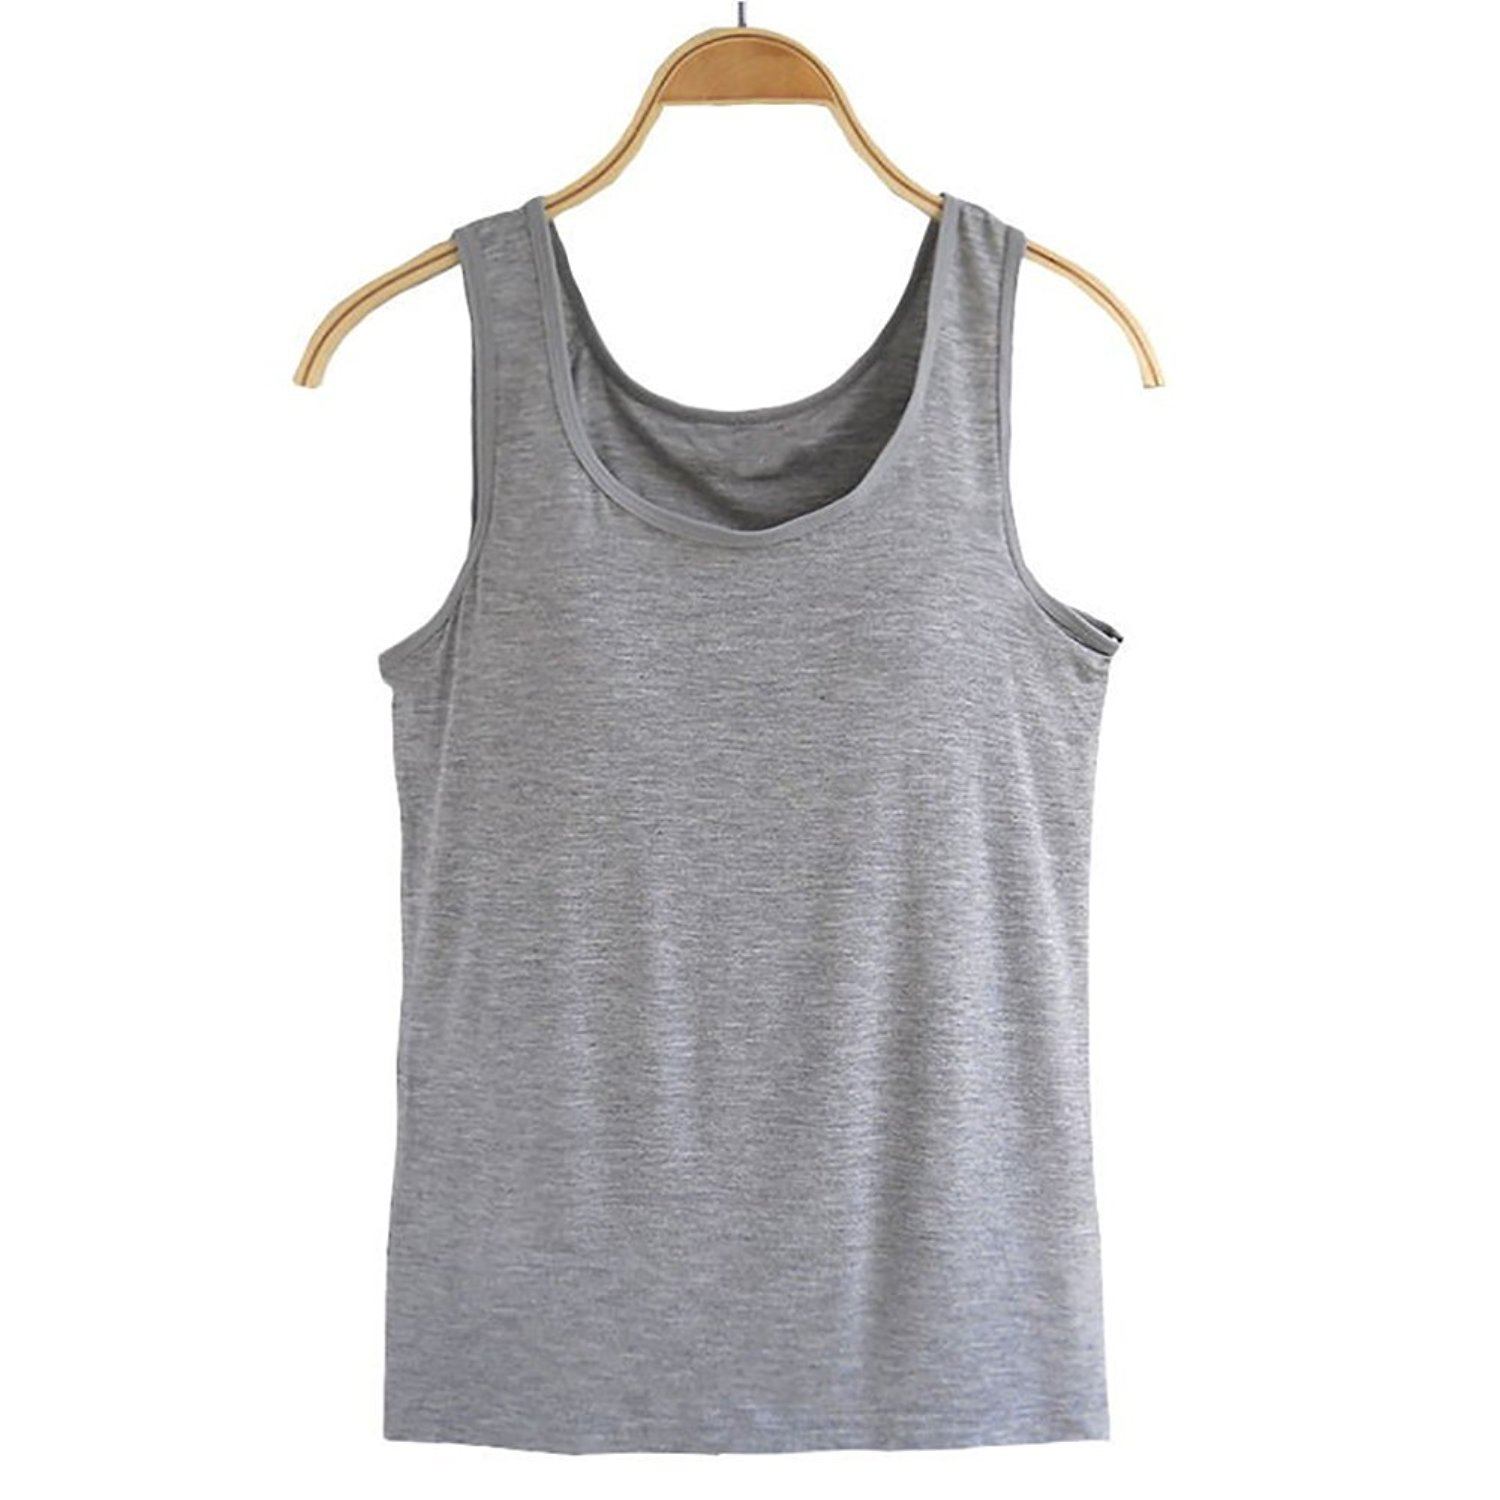 bc19633379134 Get Quotations · Ibeauti Womens Cami with Shelf Bra Sleeveless Camisole  Tank Tops